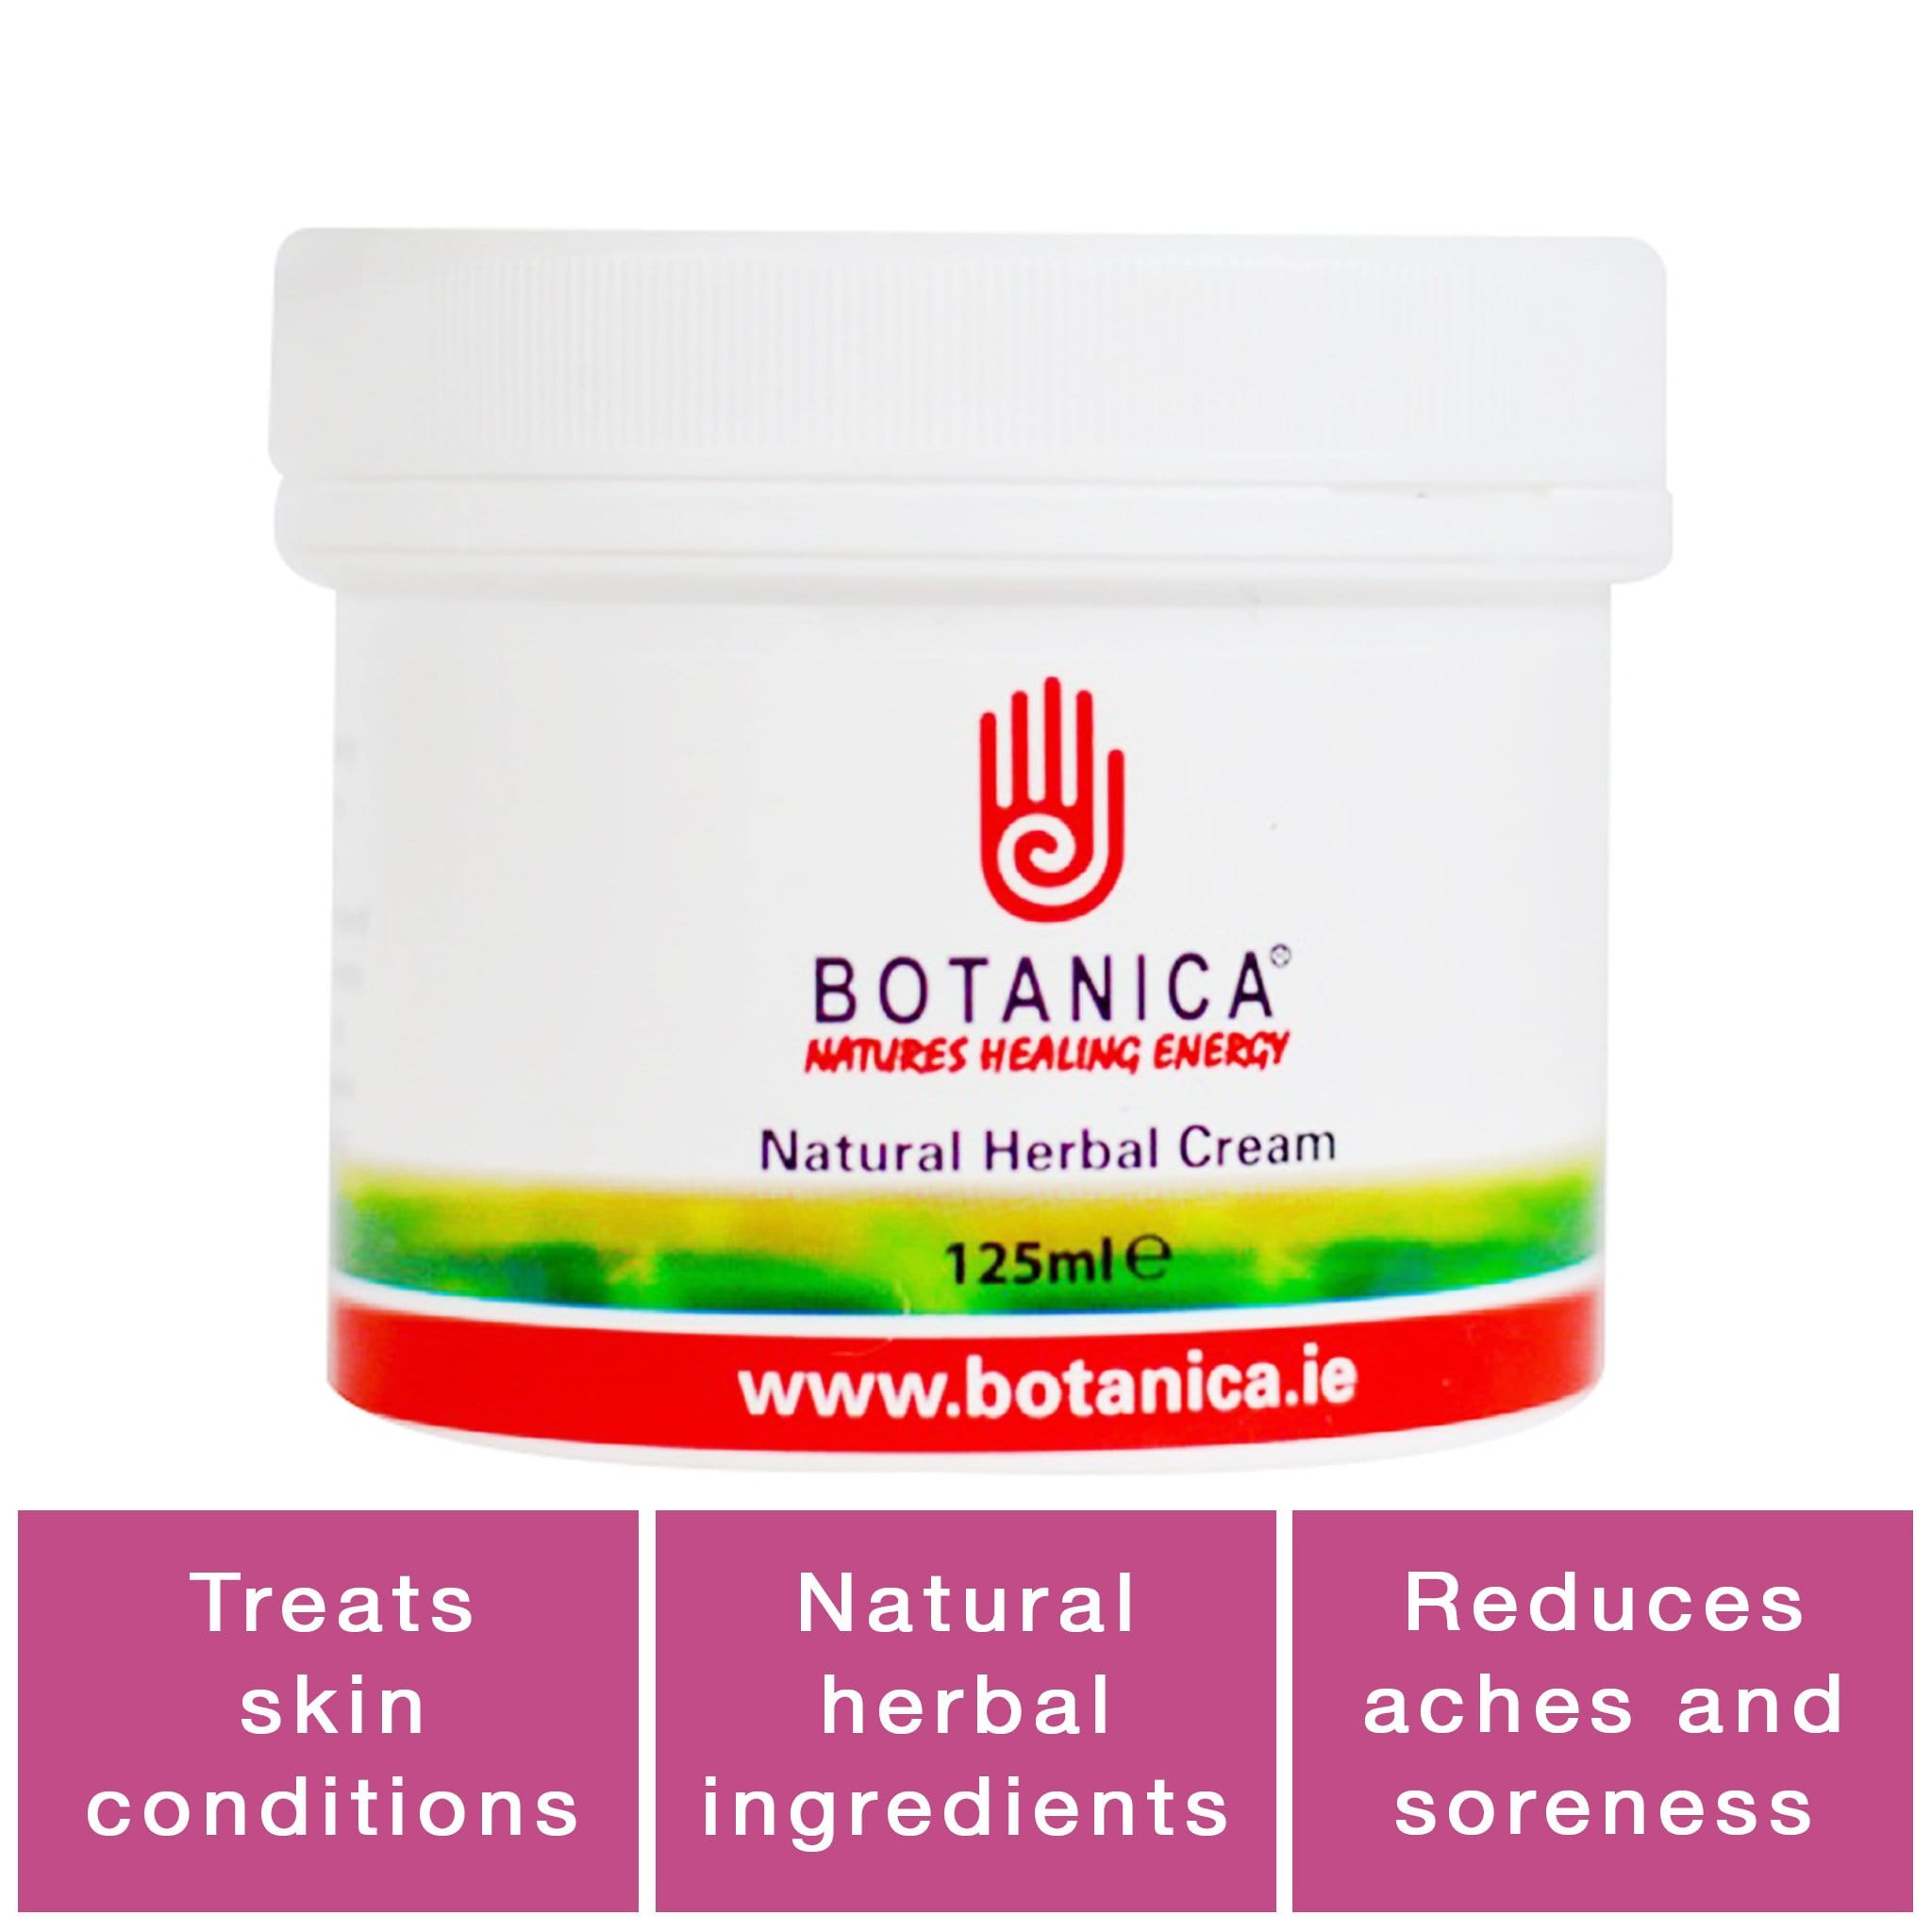 Botanica Natural Herbal Cream BOT0050 125ml Hero Image